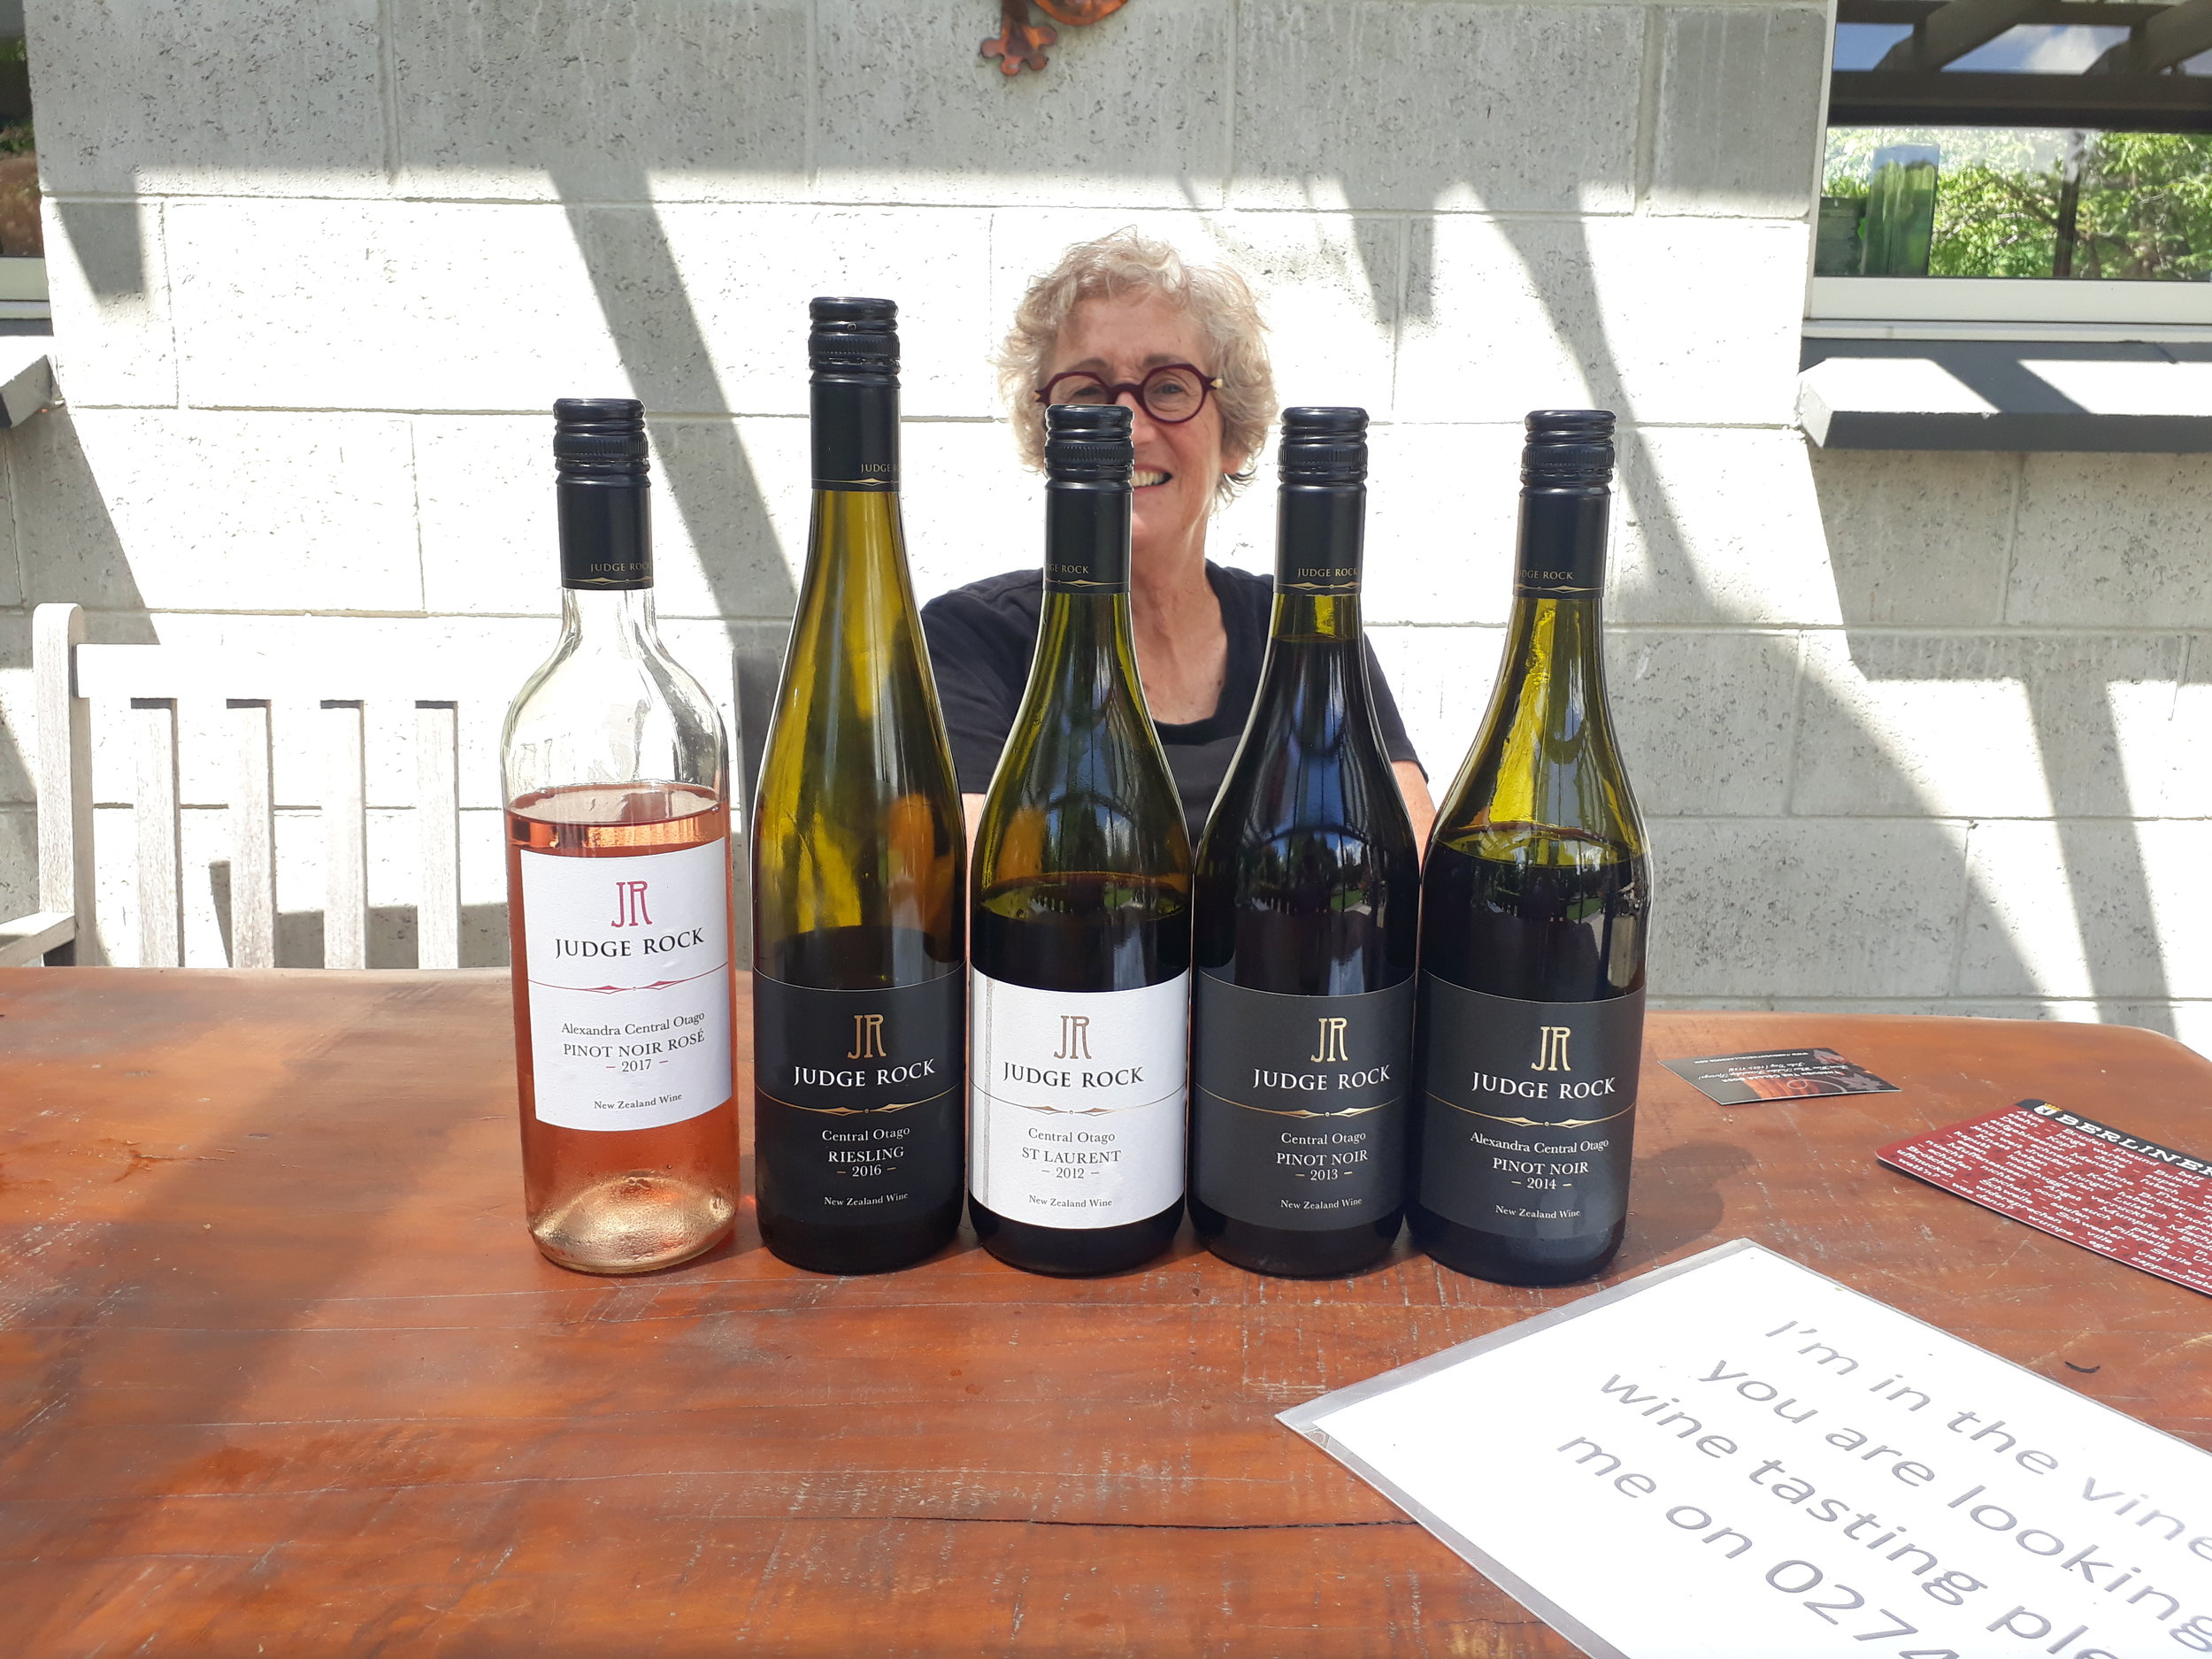 Angela Jacobson partially obscured as she talks through Judge Rock's range of wines.